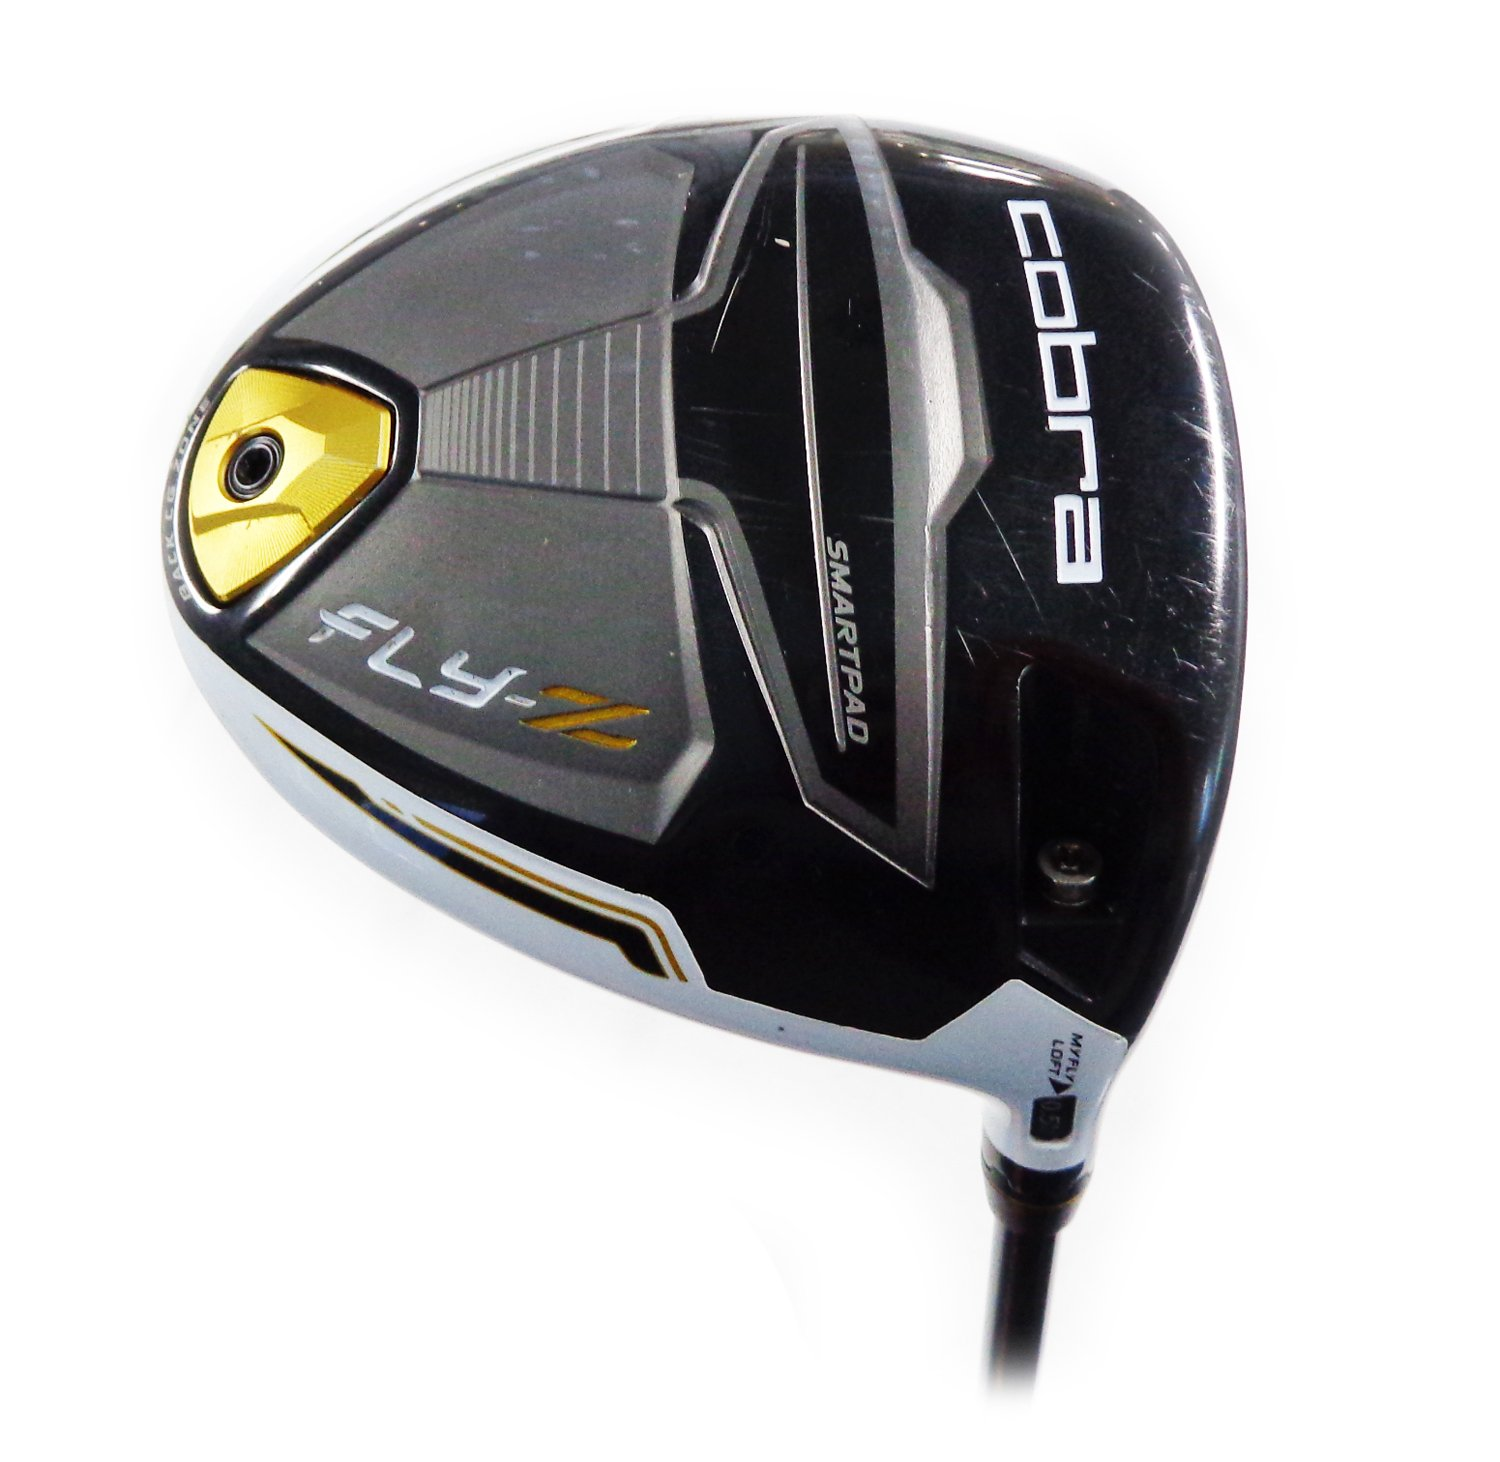 NEW Cobra Golf AMP-D 9.5° Driver Stiff Flex AMPD 2013 by Cobra